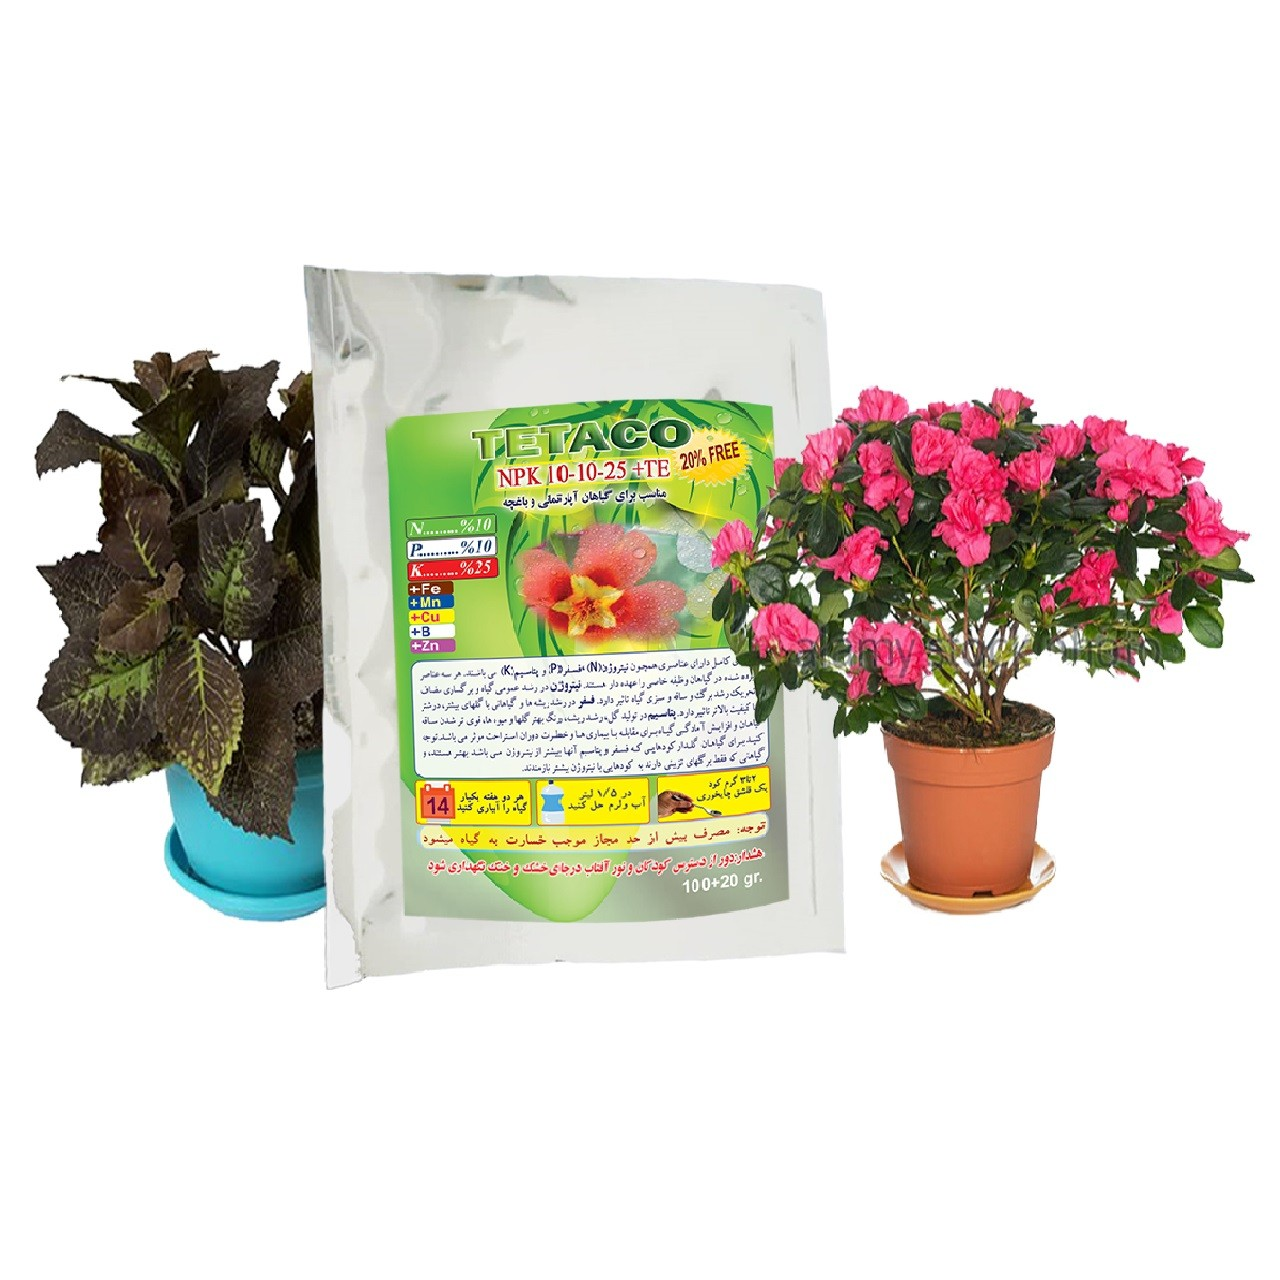 image number  3 products  NPK 10 10 25 fertilizer for houseplants weighs 120 grams